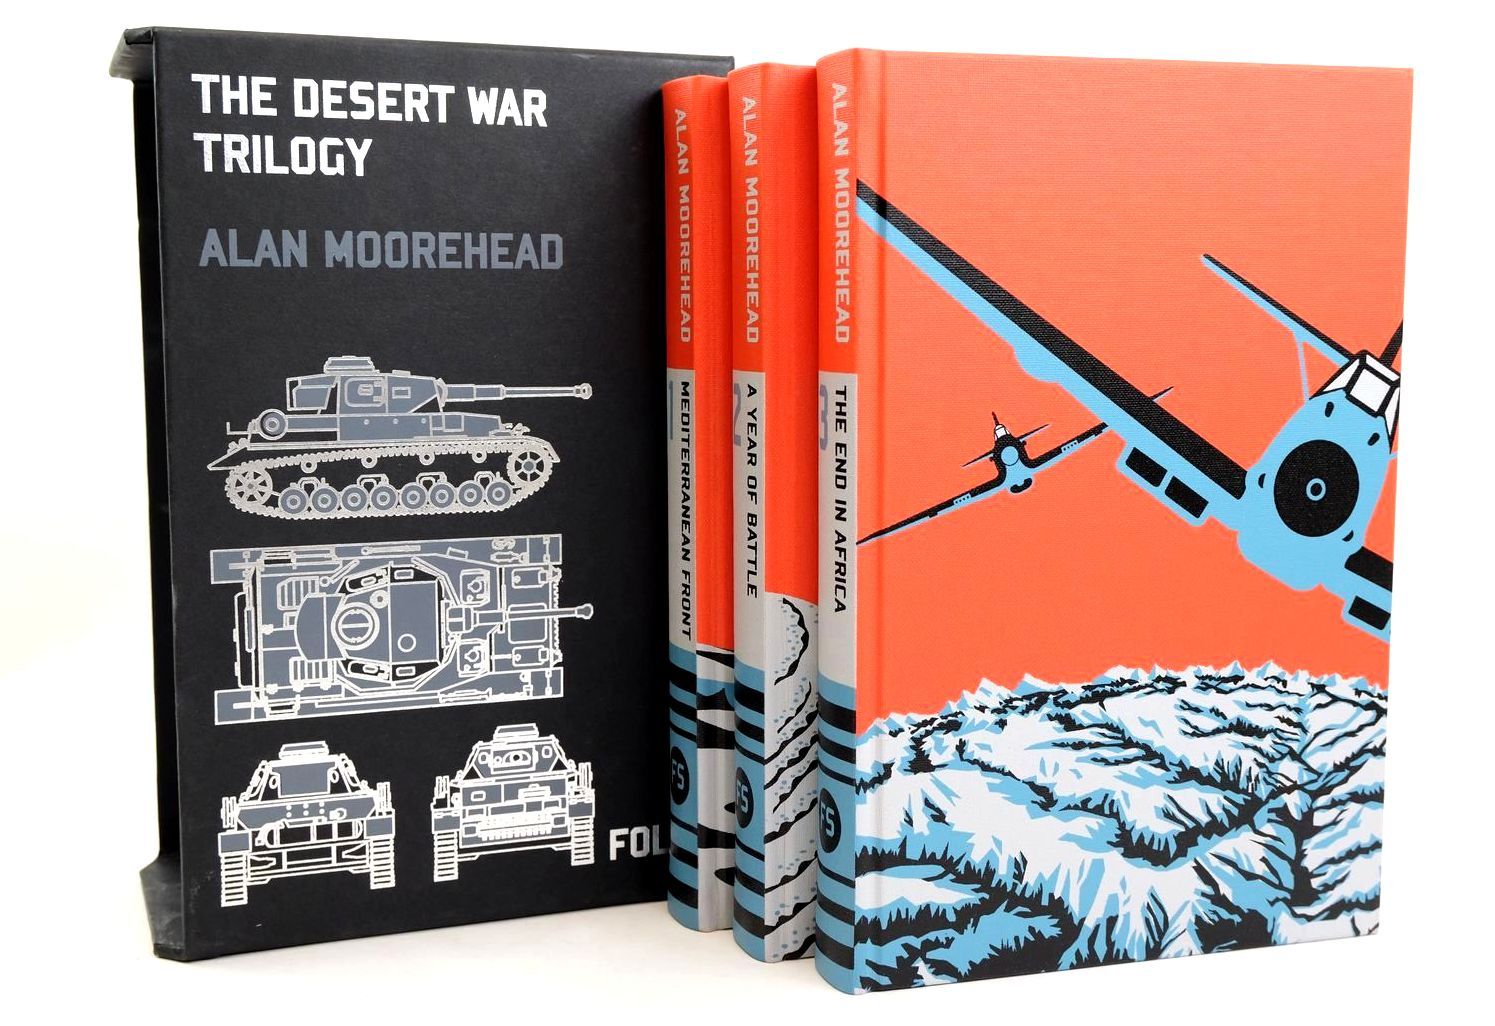 Photo of THE DESERT WAR TRILOGY (3 VOLUMES) written by Moorehead, Alan published by Folio Society (STOCK CODE: 1318672)  for sale by Stella & Rose's Books